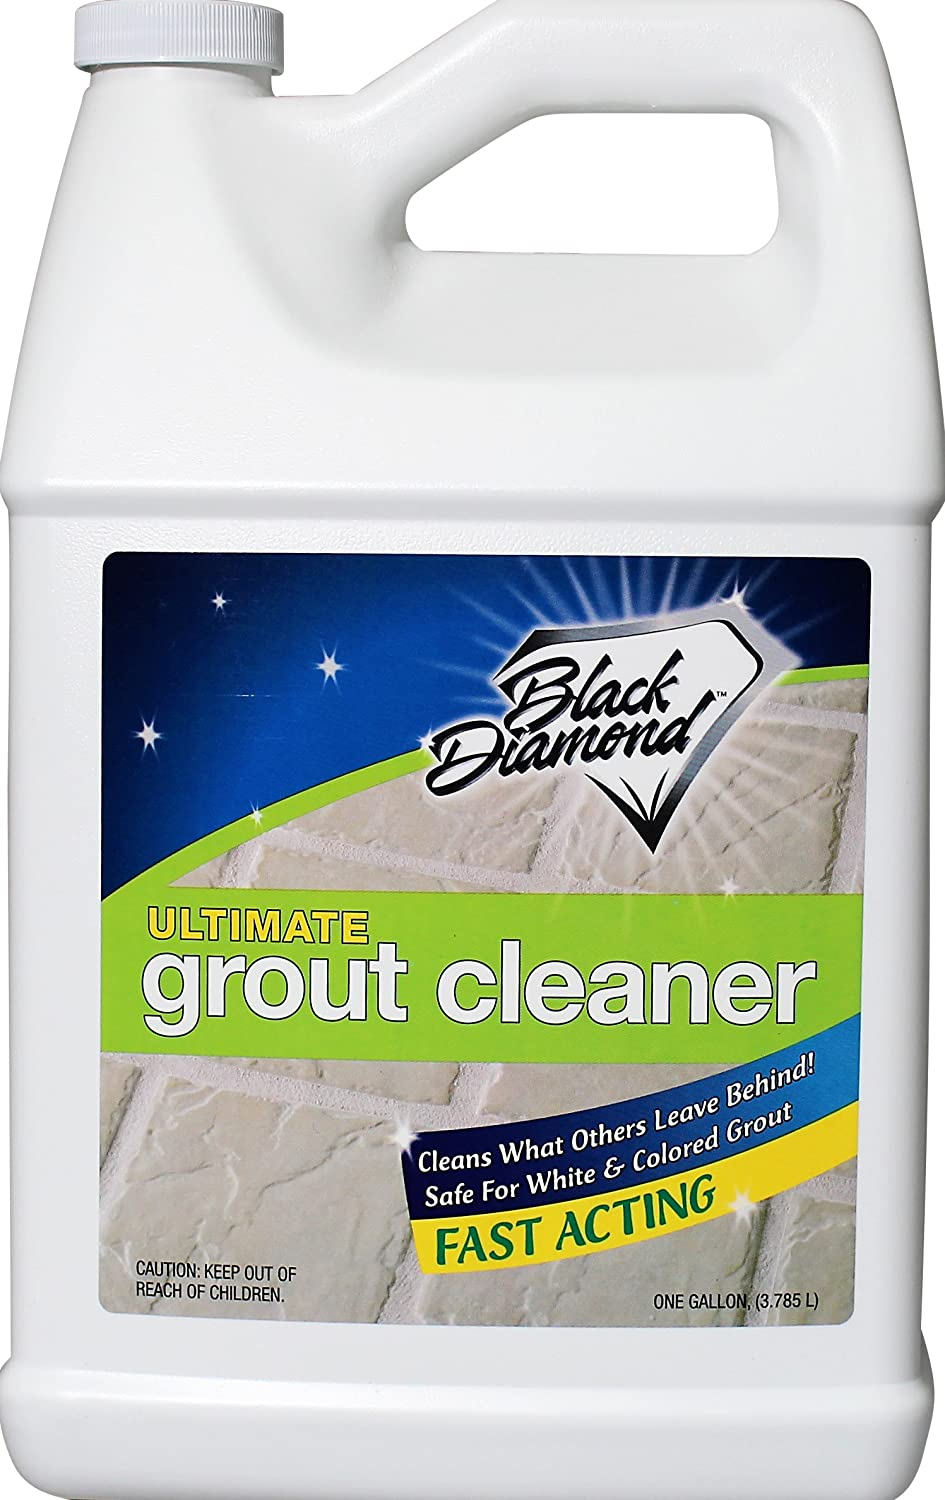 Ultimate Grout leaner: Best Grout Cleaner for Tile    Grout Steam Cleaners